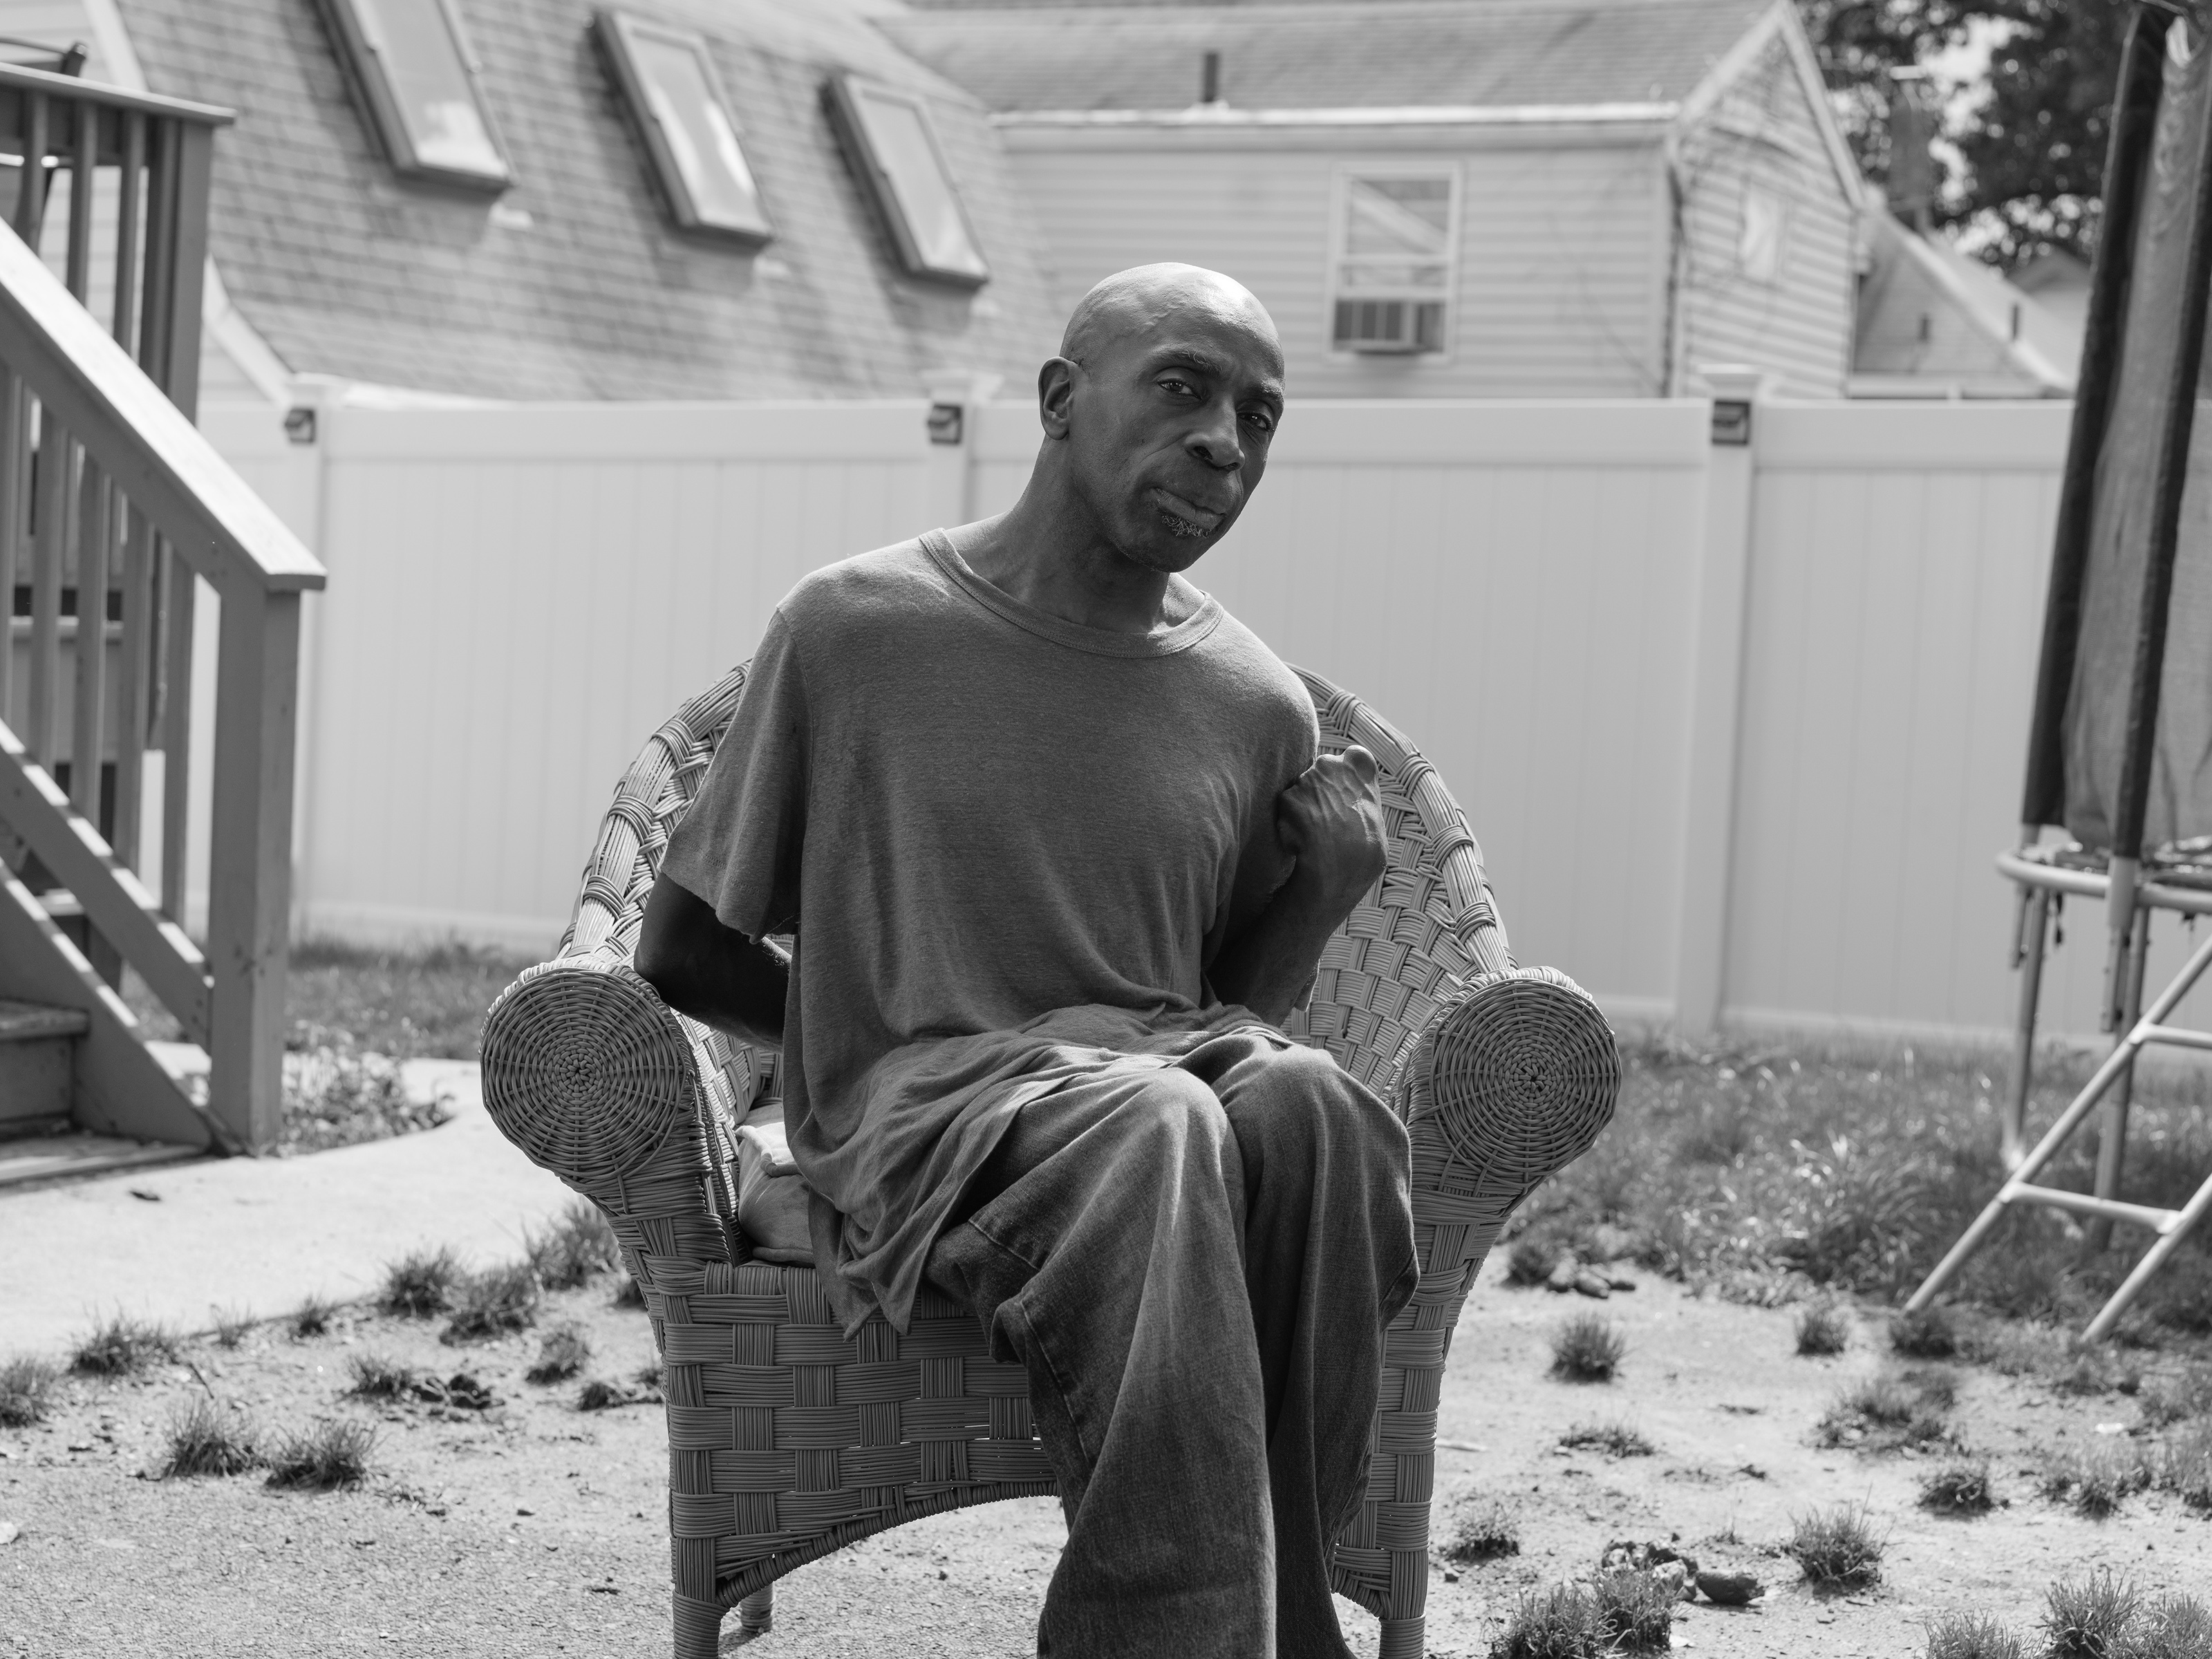 A black and white image of a man sitting in a wicker chair in the sun, in a yard sparsely covered with clumps of grass